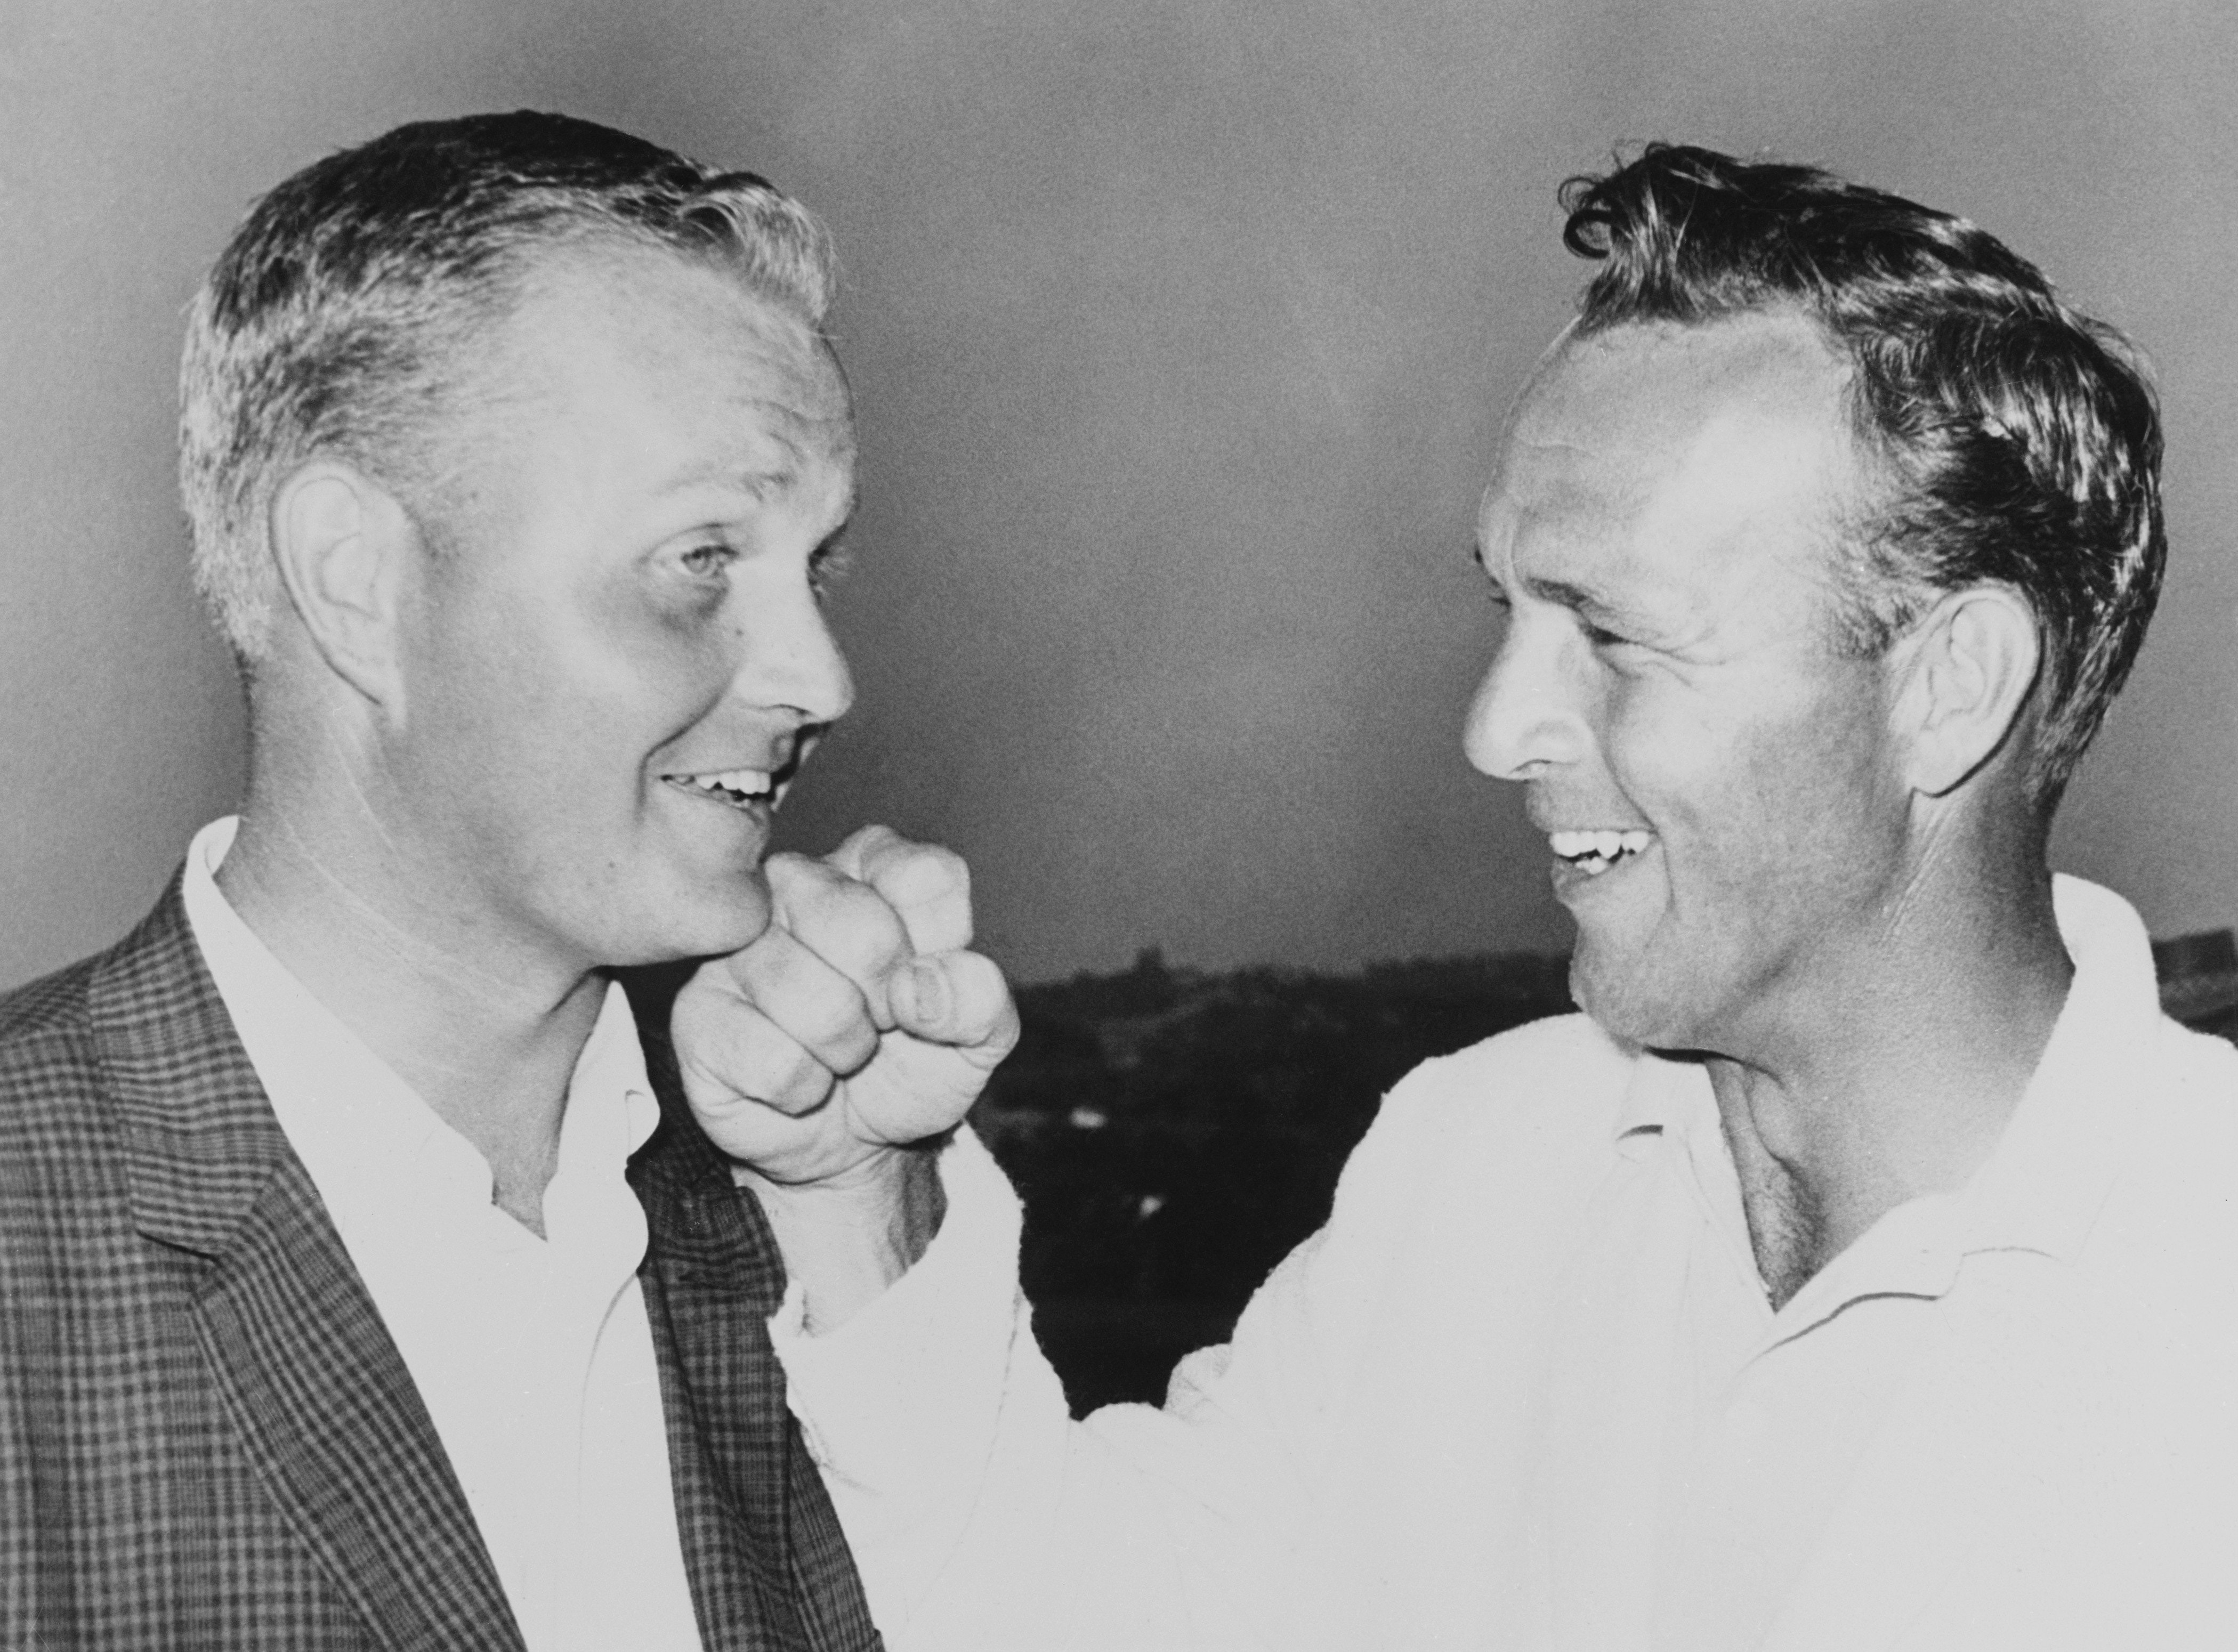 Arnold Palmer playfully punches the chin of Jack Nicklaus after Nicklaus won the 1962 U.S. Open at the Oakmont Country Club in a playoff.